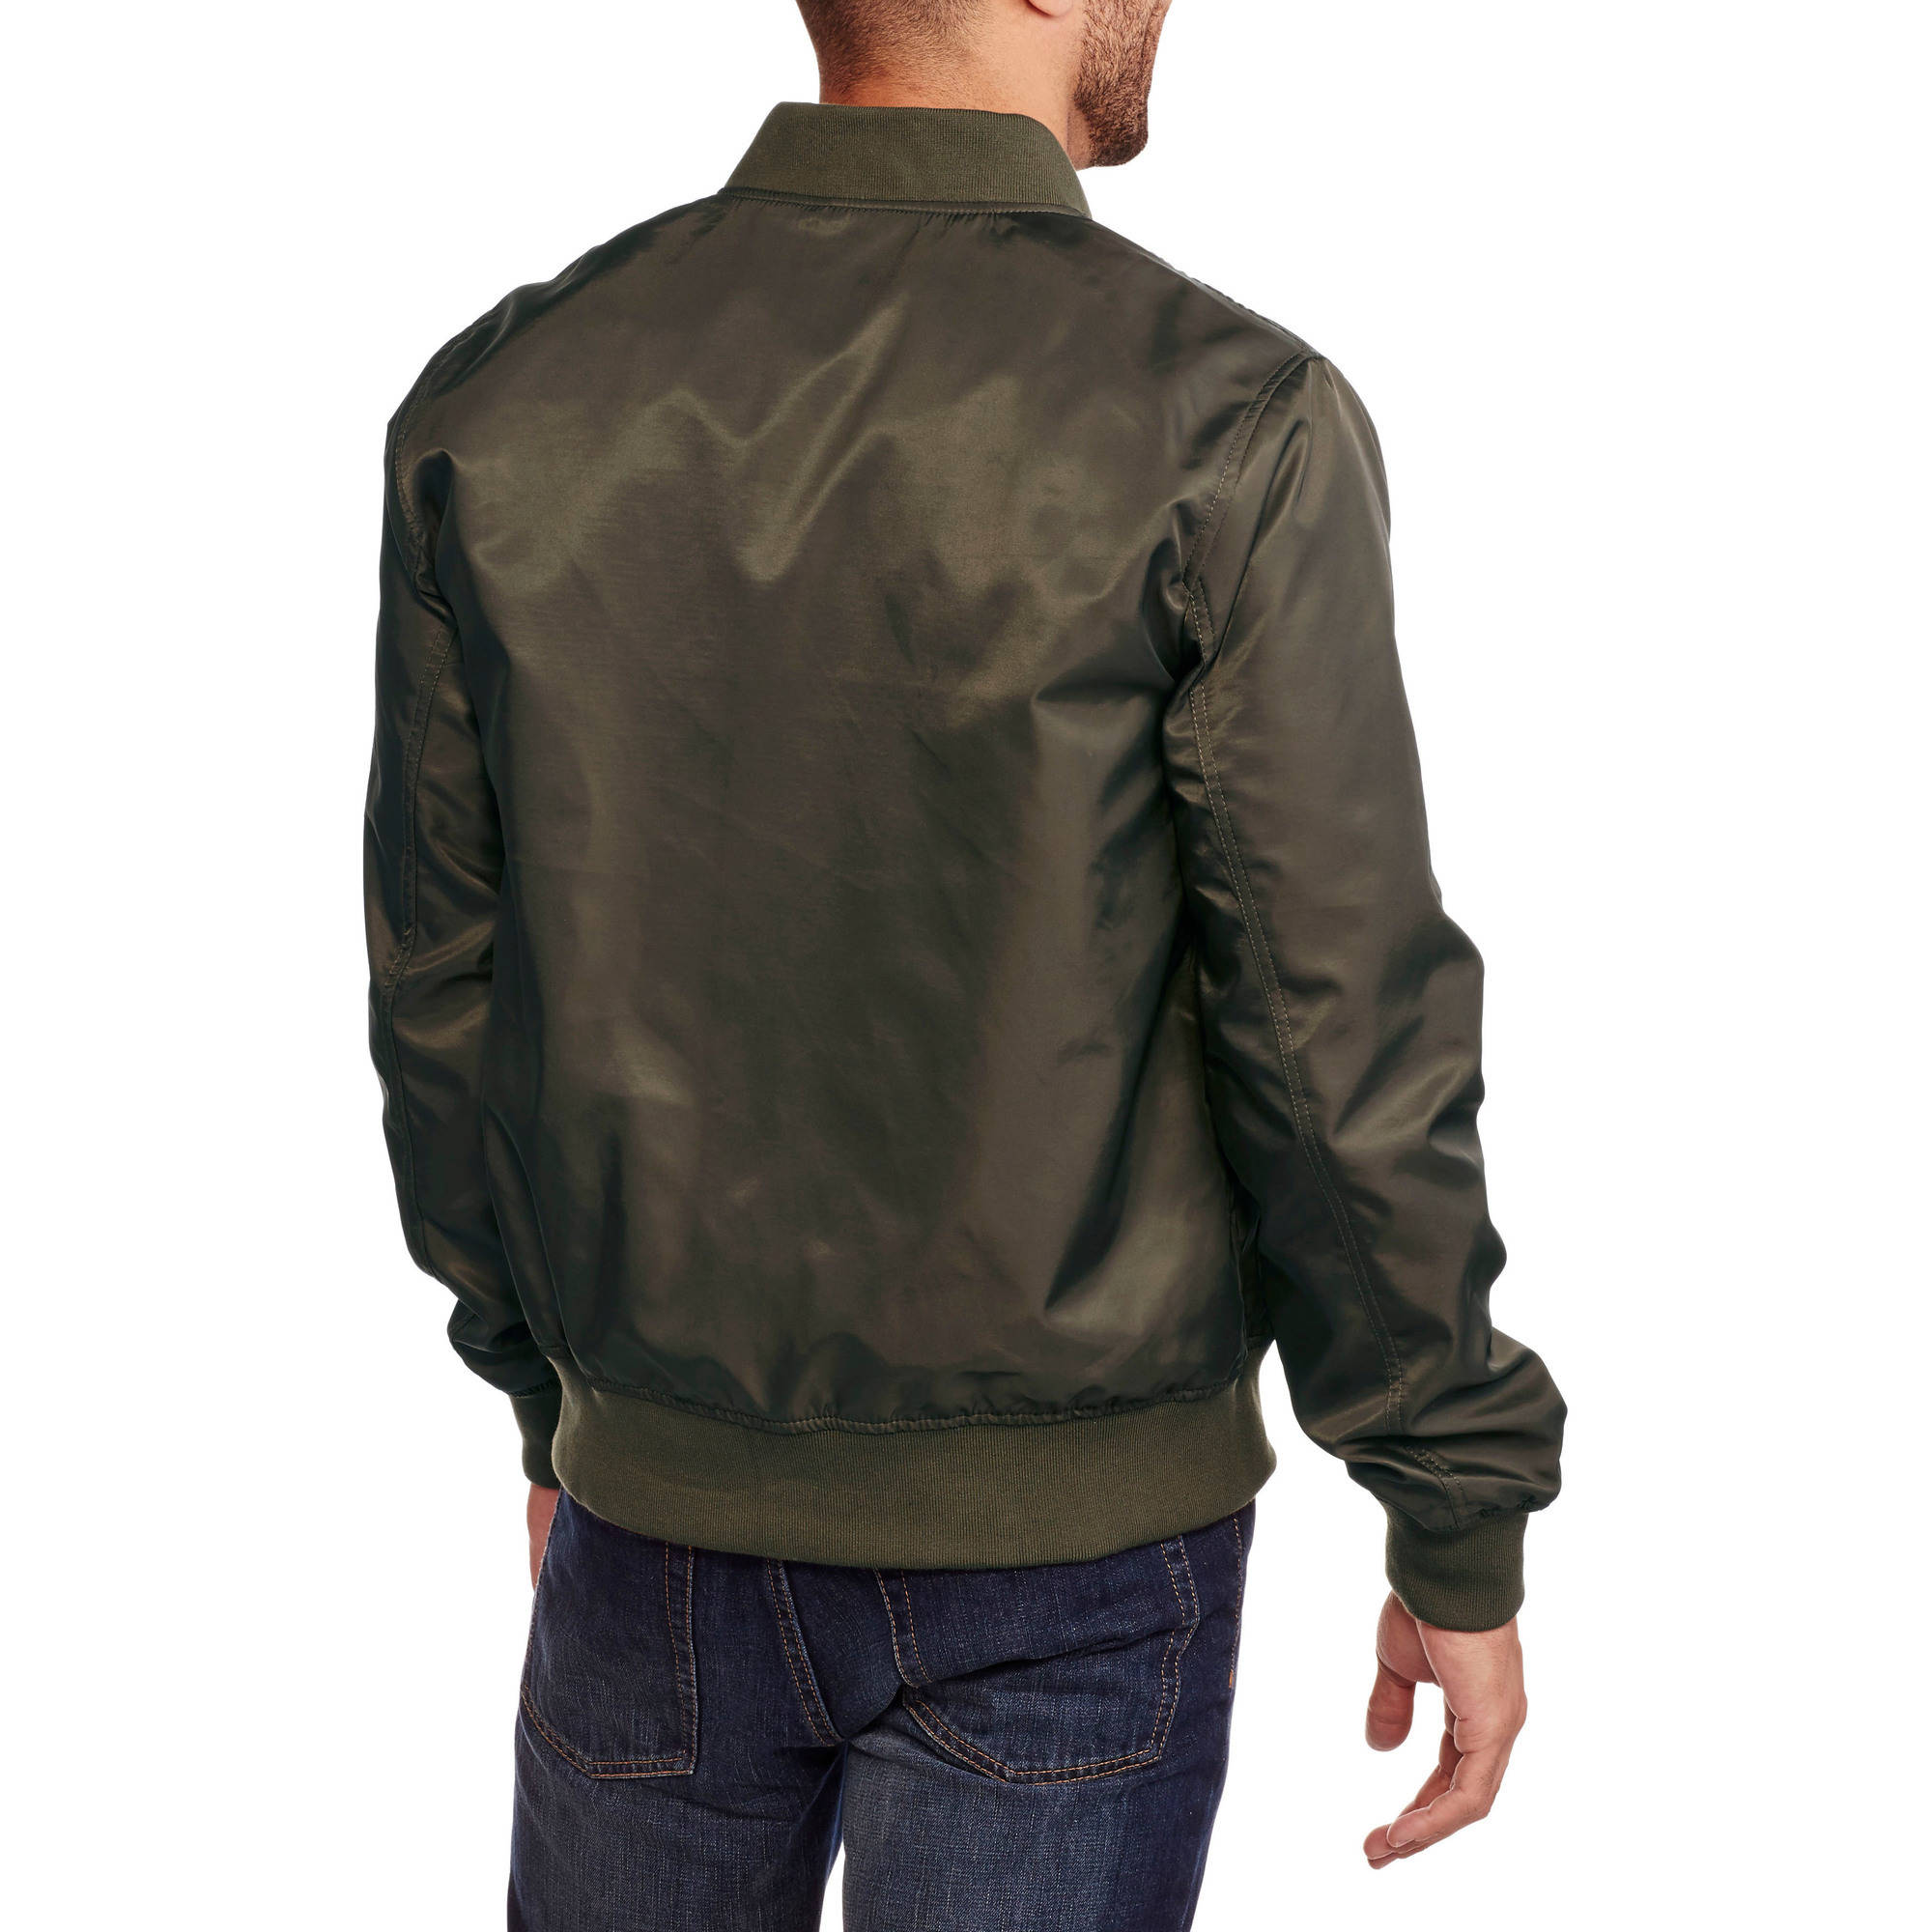 Hooded Jackets. invalid category id. Hooded Jackets. Showing 40 of 45 results that match your query. Search Product Result. Product - North End Ash City Men's Elasticized Cuffs Zipper Lightweight Jacket. Product Image. Price $ Product Title. North End Ash City Men's Elasticized Cuffs Zipper Lightweight Jacket.